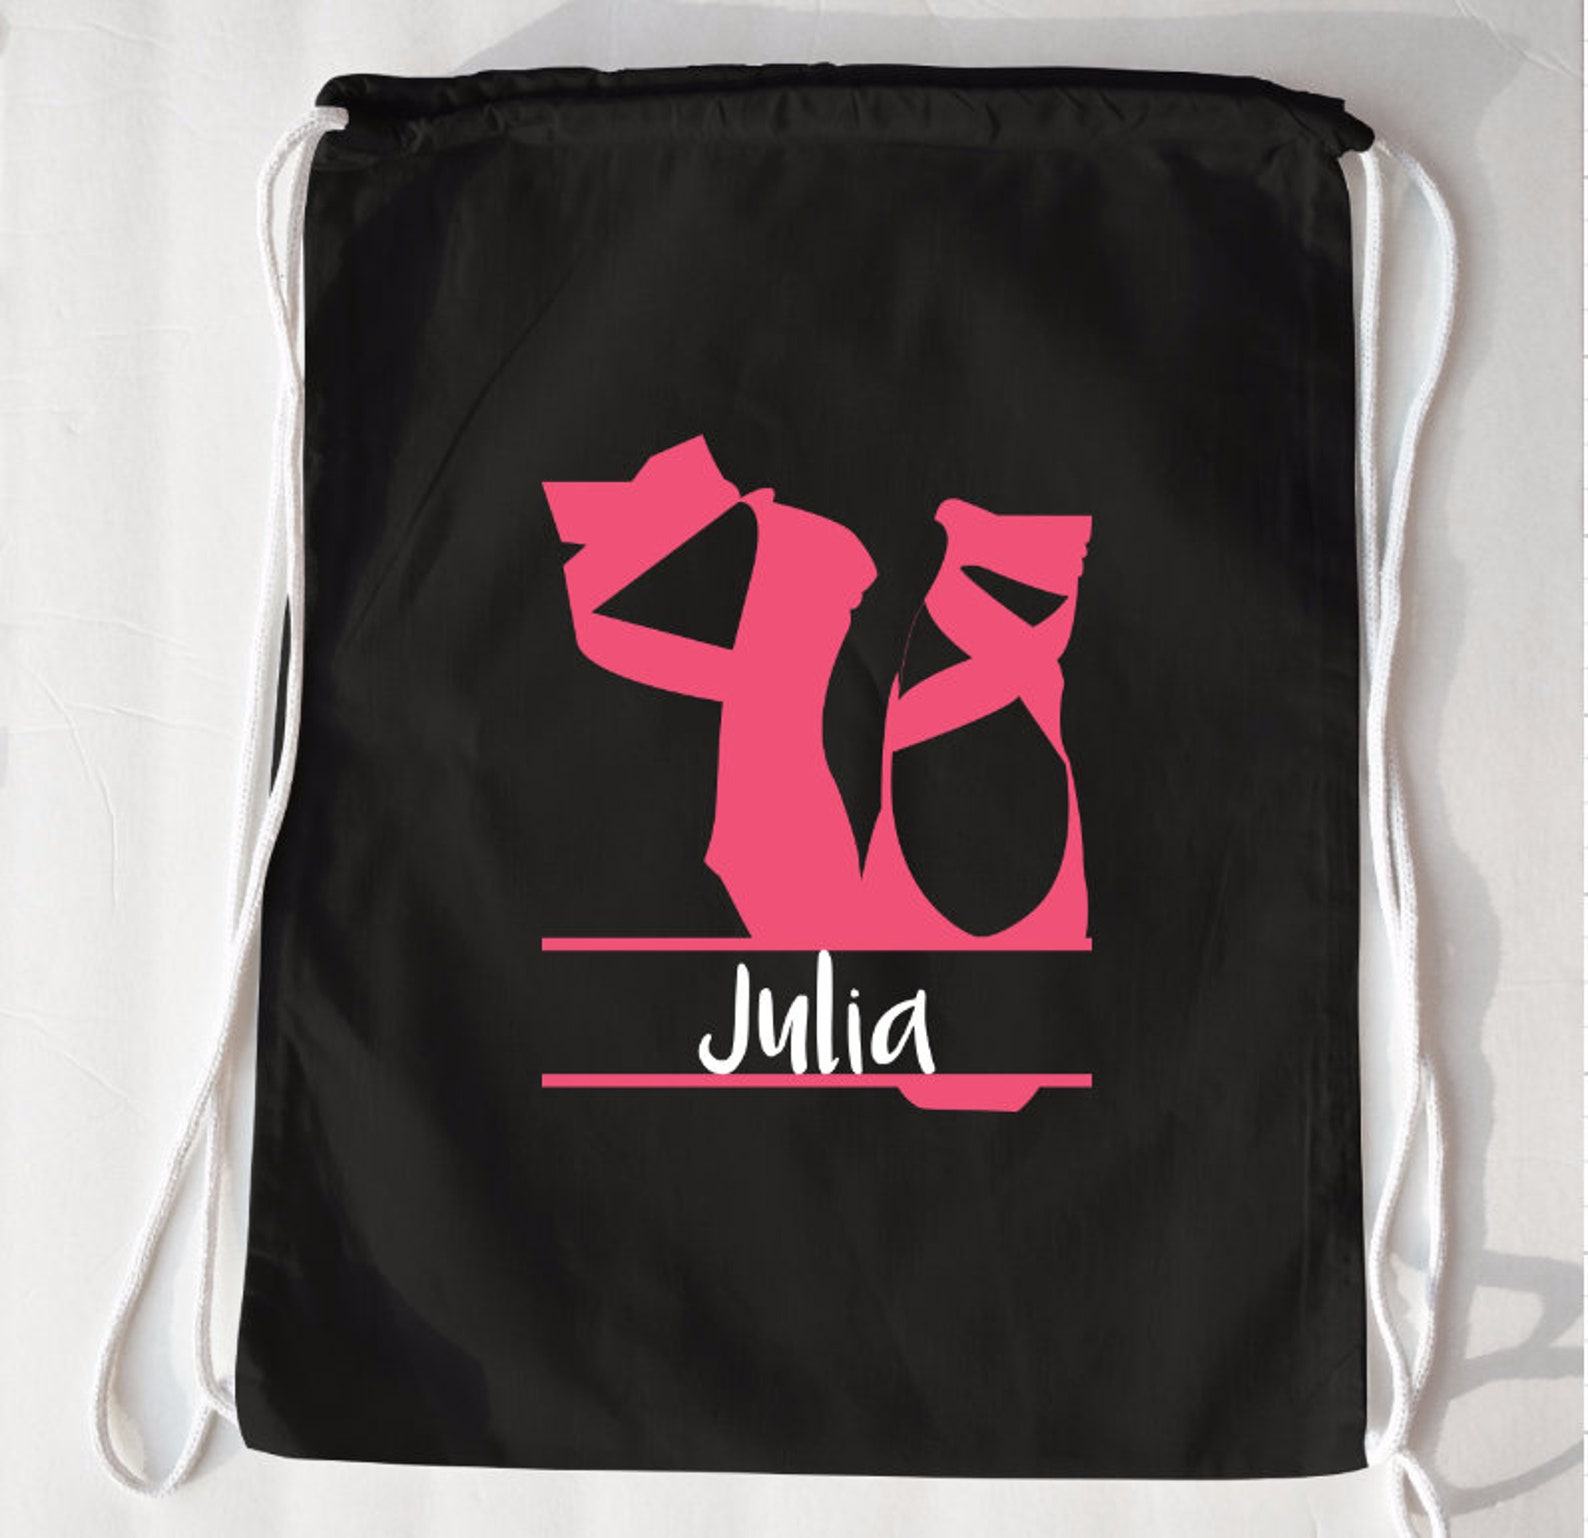 ballet drawstring bag | ballet bag | personalized ballet bag | girls dance bags | ballet gifts | personalized dance bag | pointe